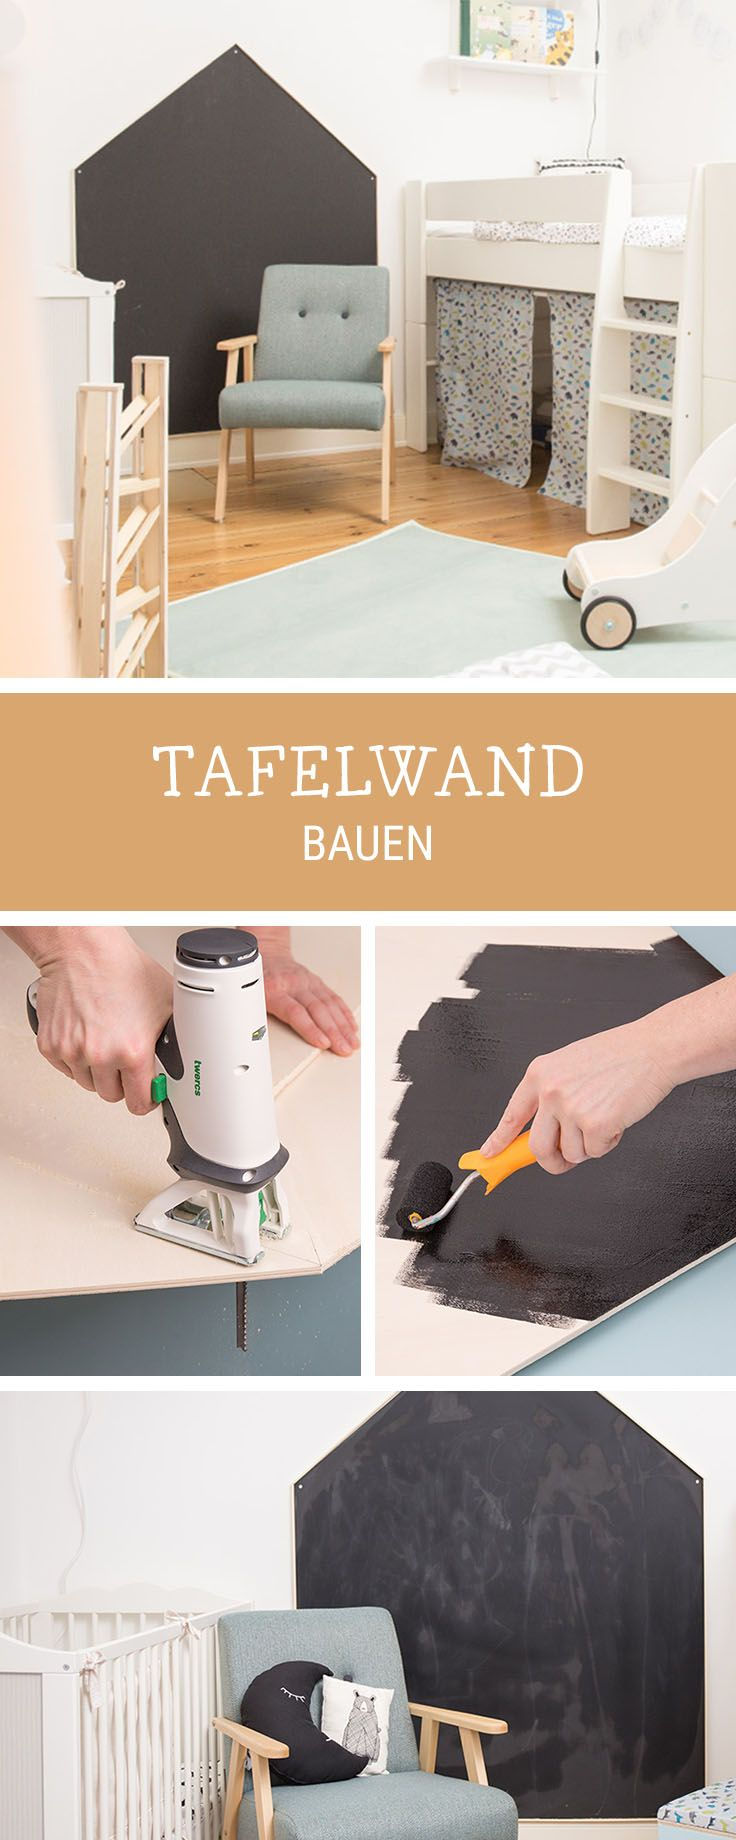 DIY fürs Kinderzimmer: Tafelwand zum Beschreiben bauen / how to build a panel wall for the nursery via DaWanda.com #tafelwand #diy #kinderzimmer